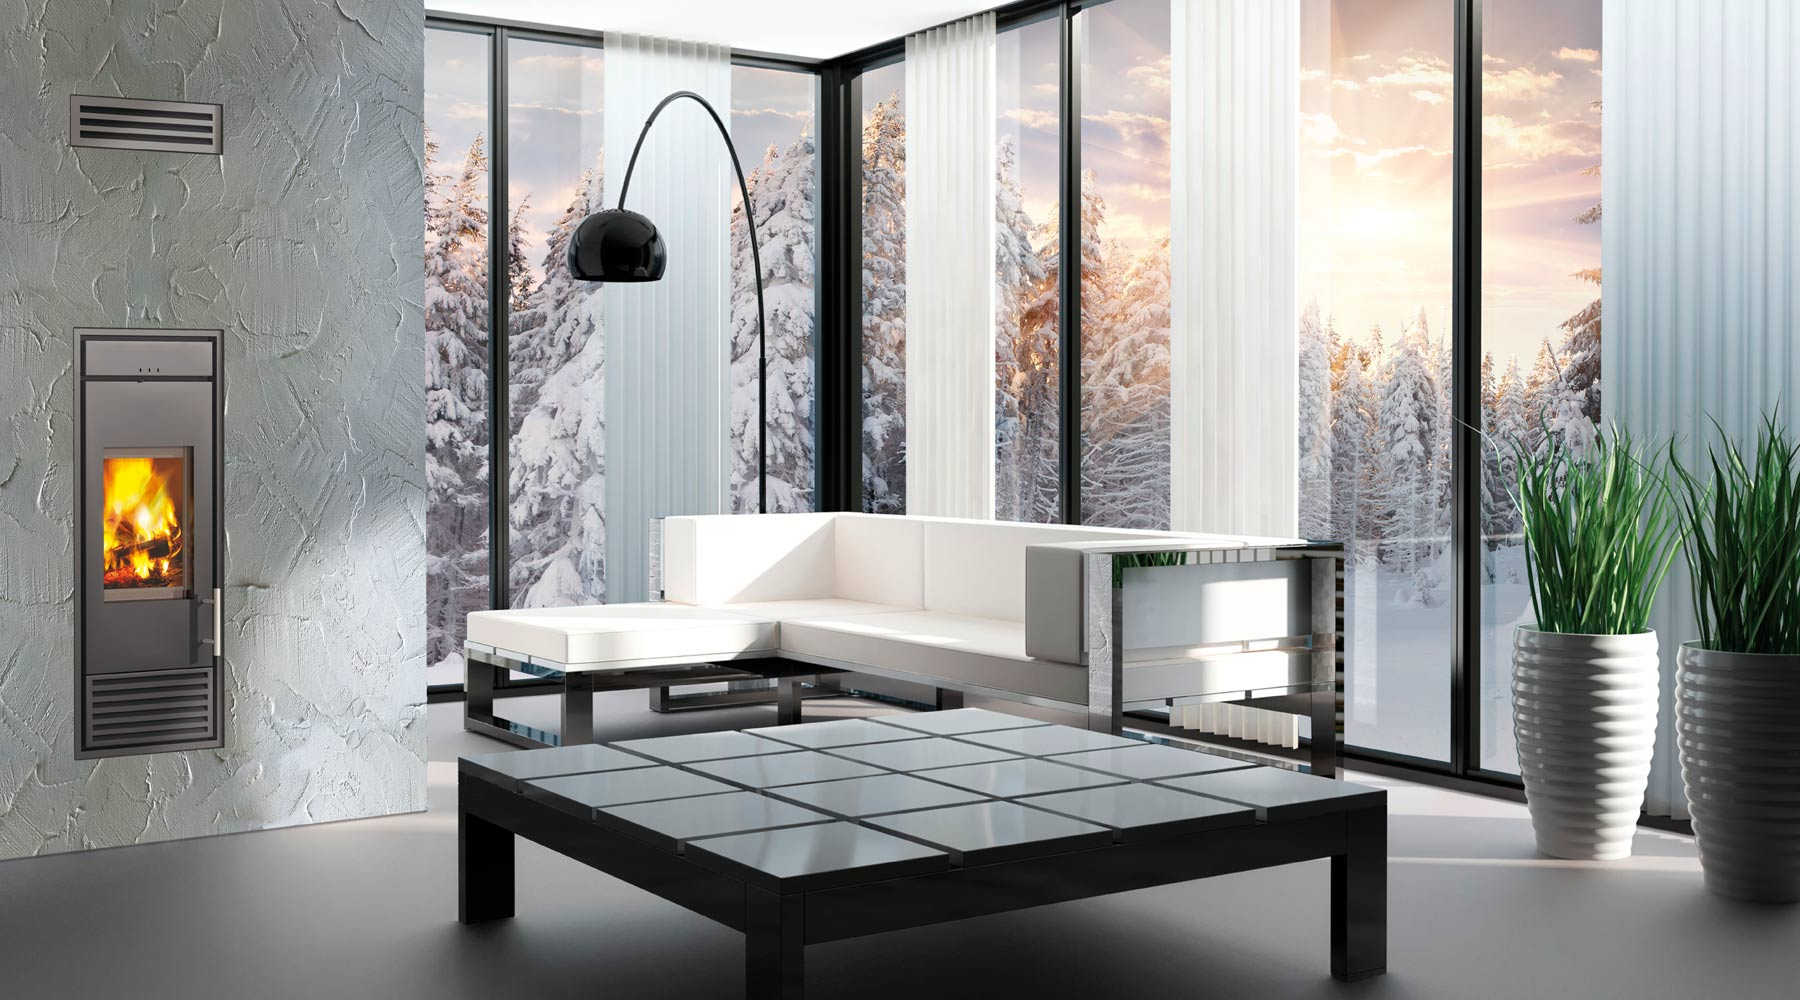 schiedel kingfire classico s wohnqualit t mit energieeffizienz schiedel deutschland. Black Bedroom Furniture Sets. Home Design Ideas